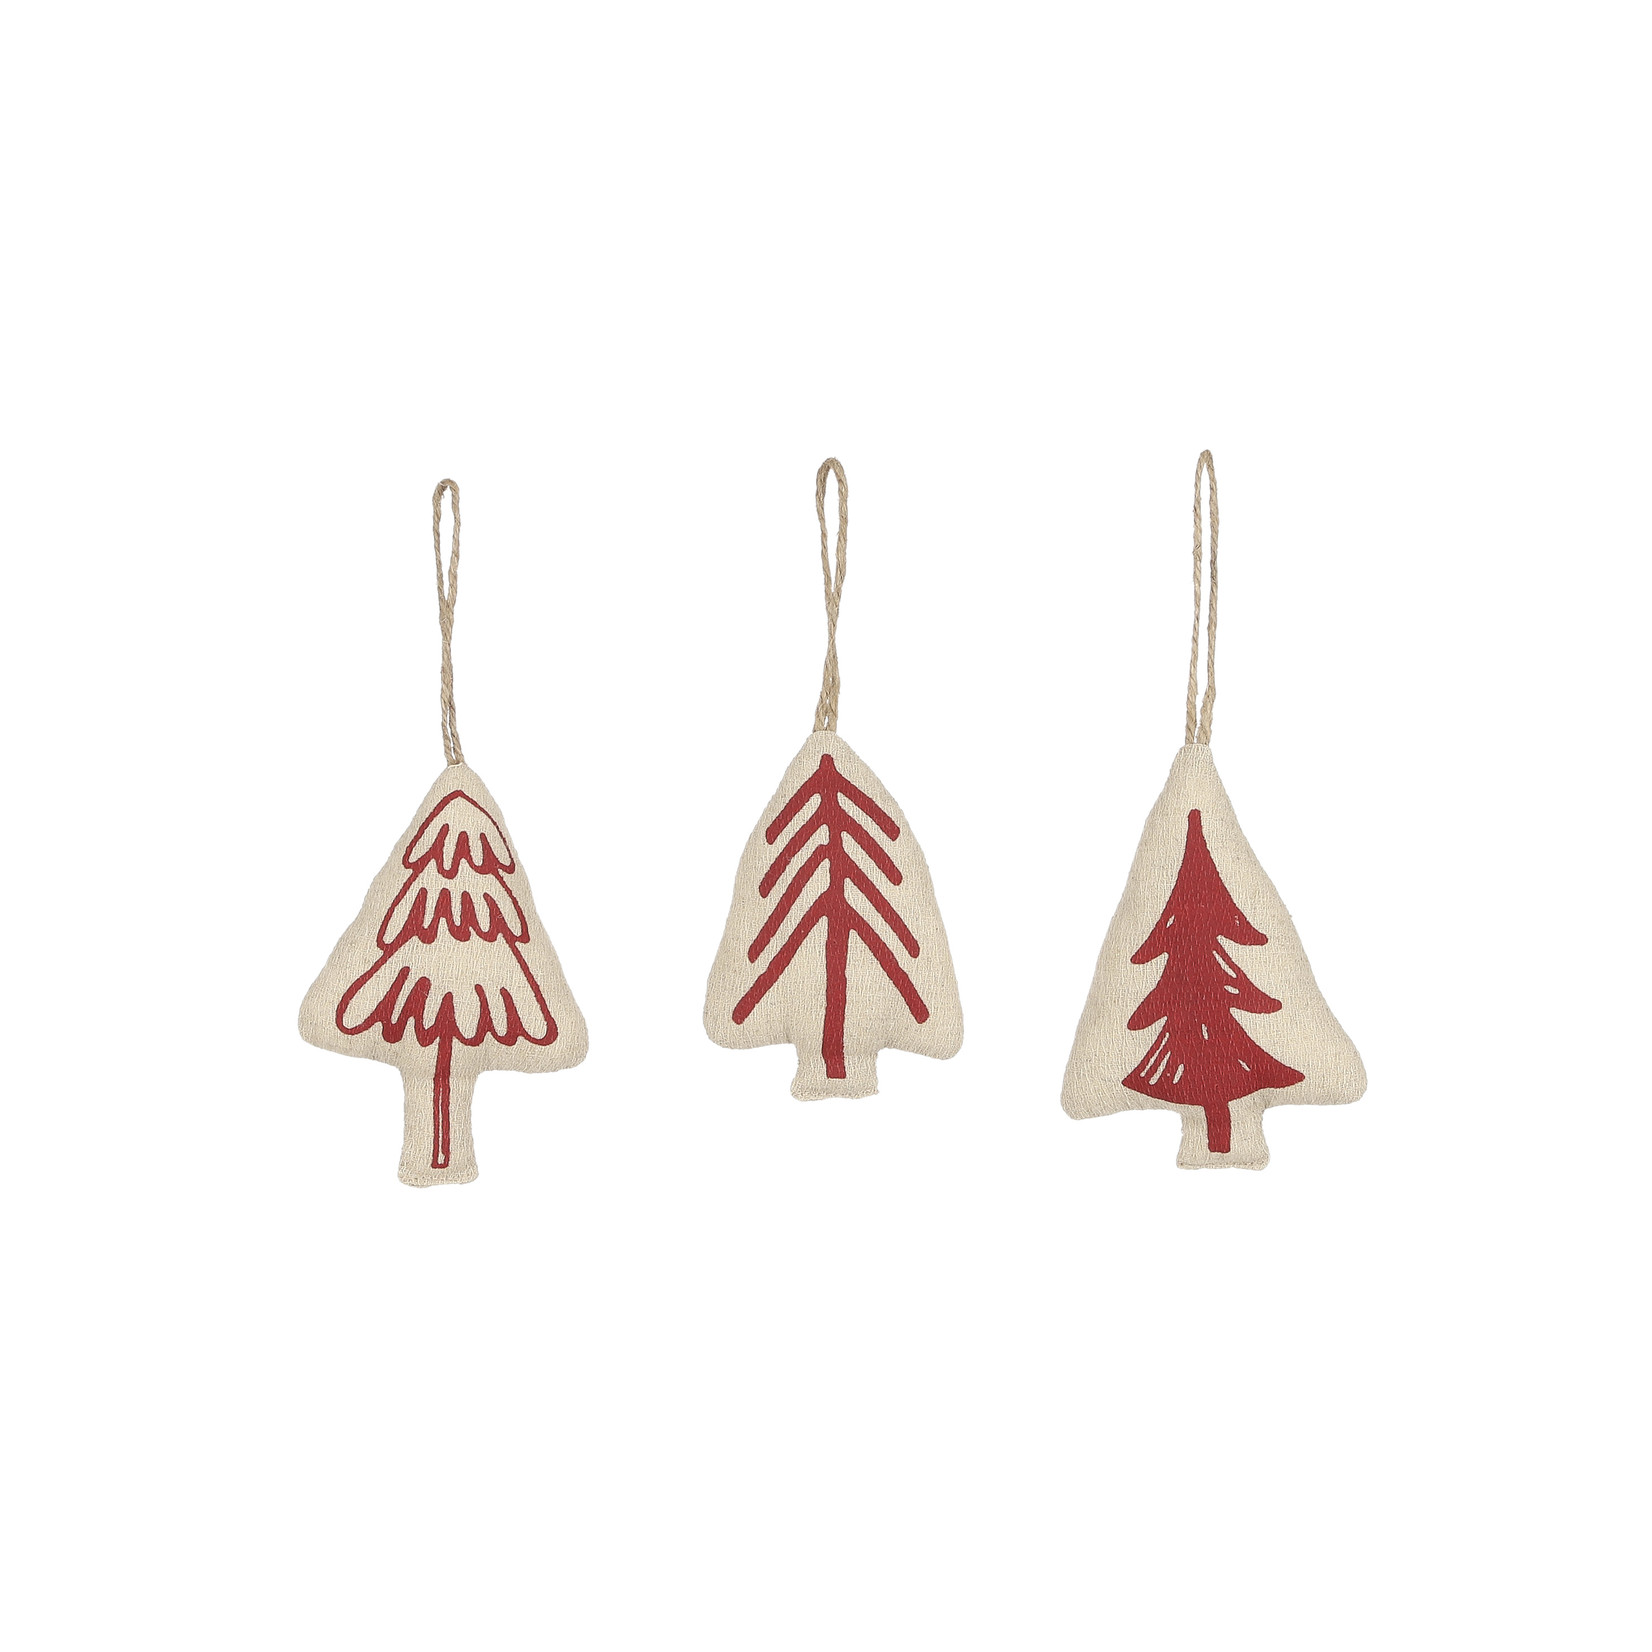 House of Seasons Ornament tree red 3 assorted